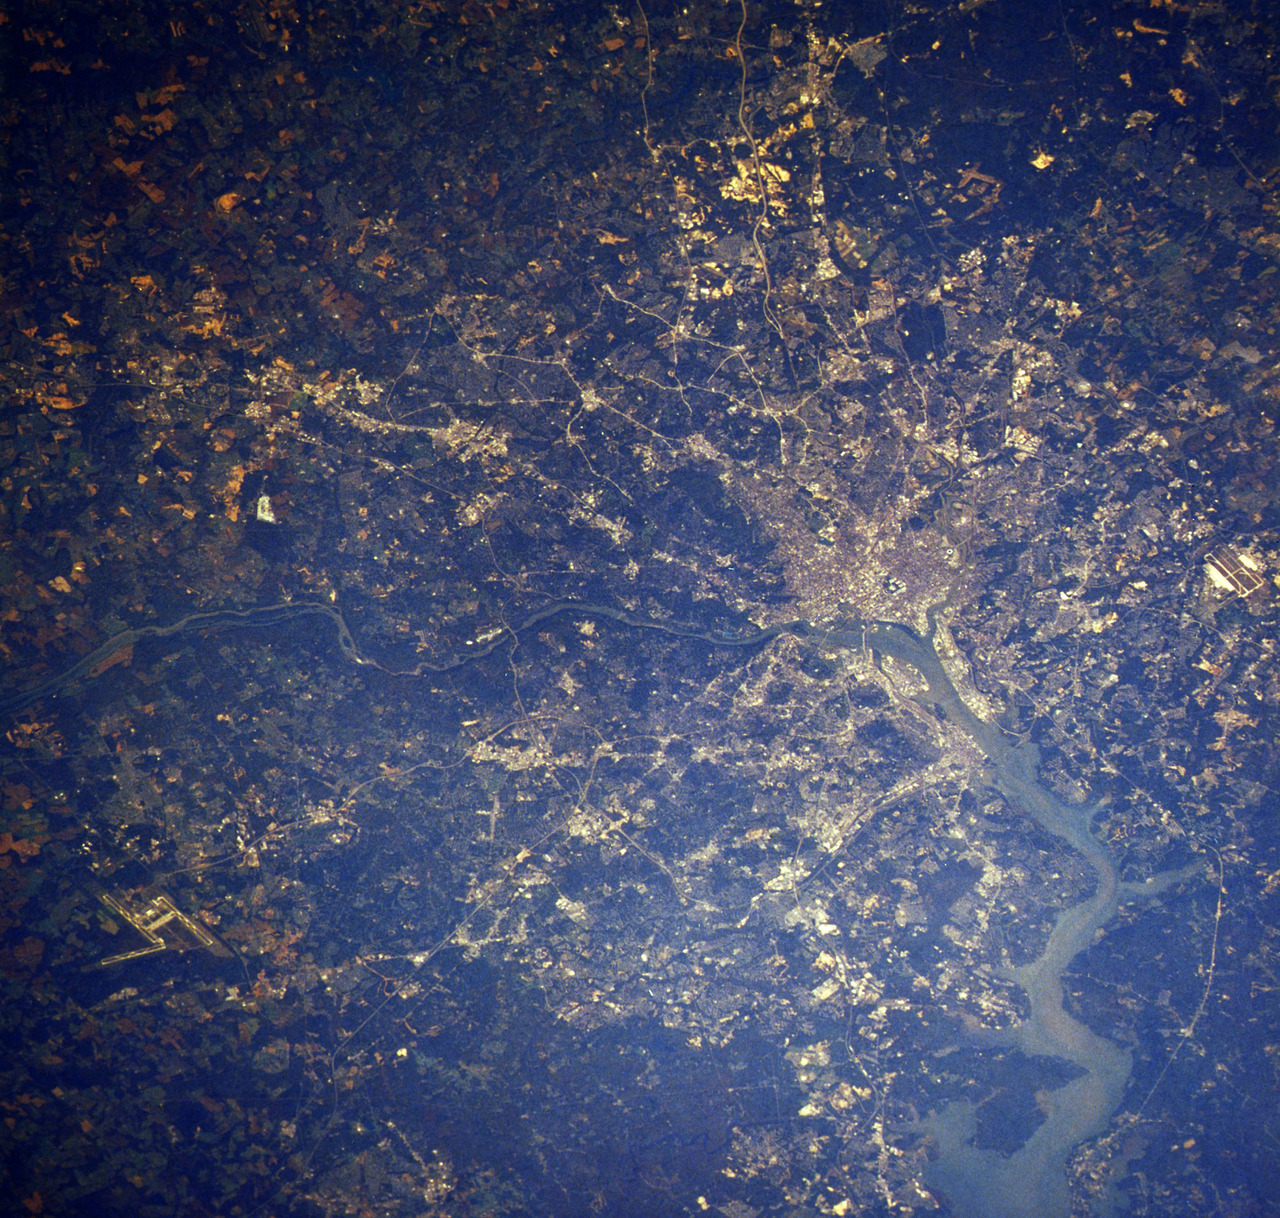 A view of the metropolitan Washington D.C., area from a U.S. Space Shuttle orbiter. The nation's capital is at right center and J.F. Dulles Airport is at lower left. The Potomac River cuts through the center, 10/23/1984